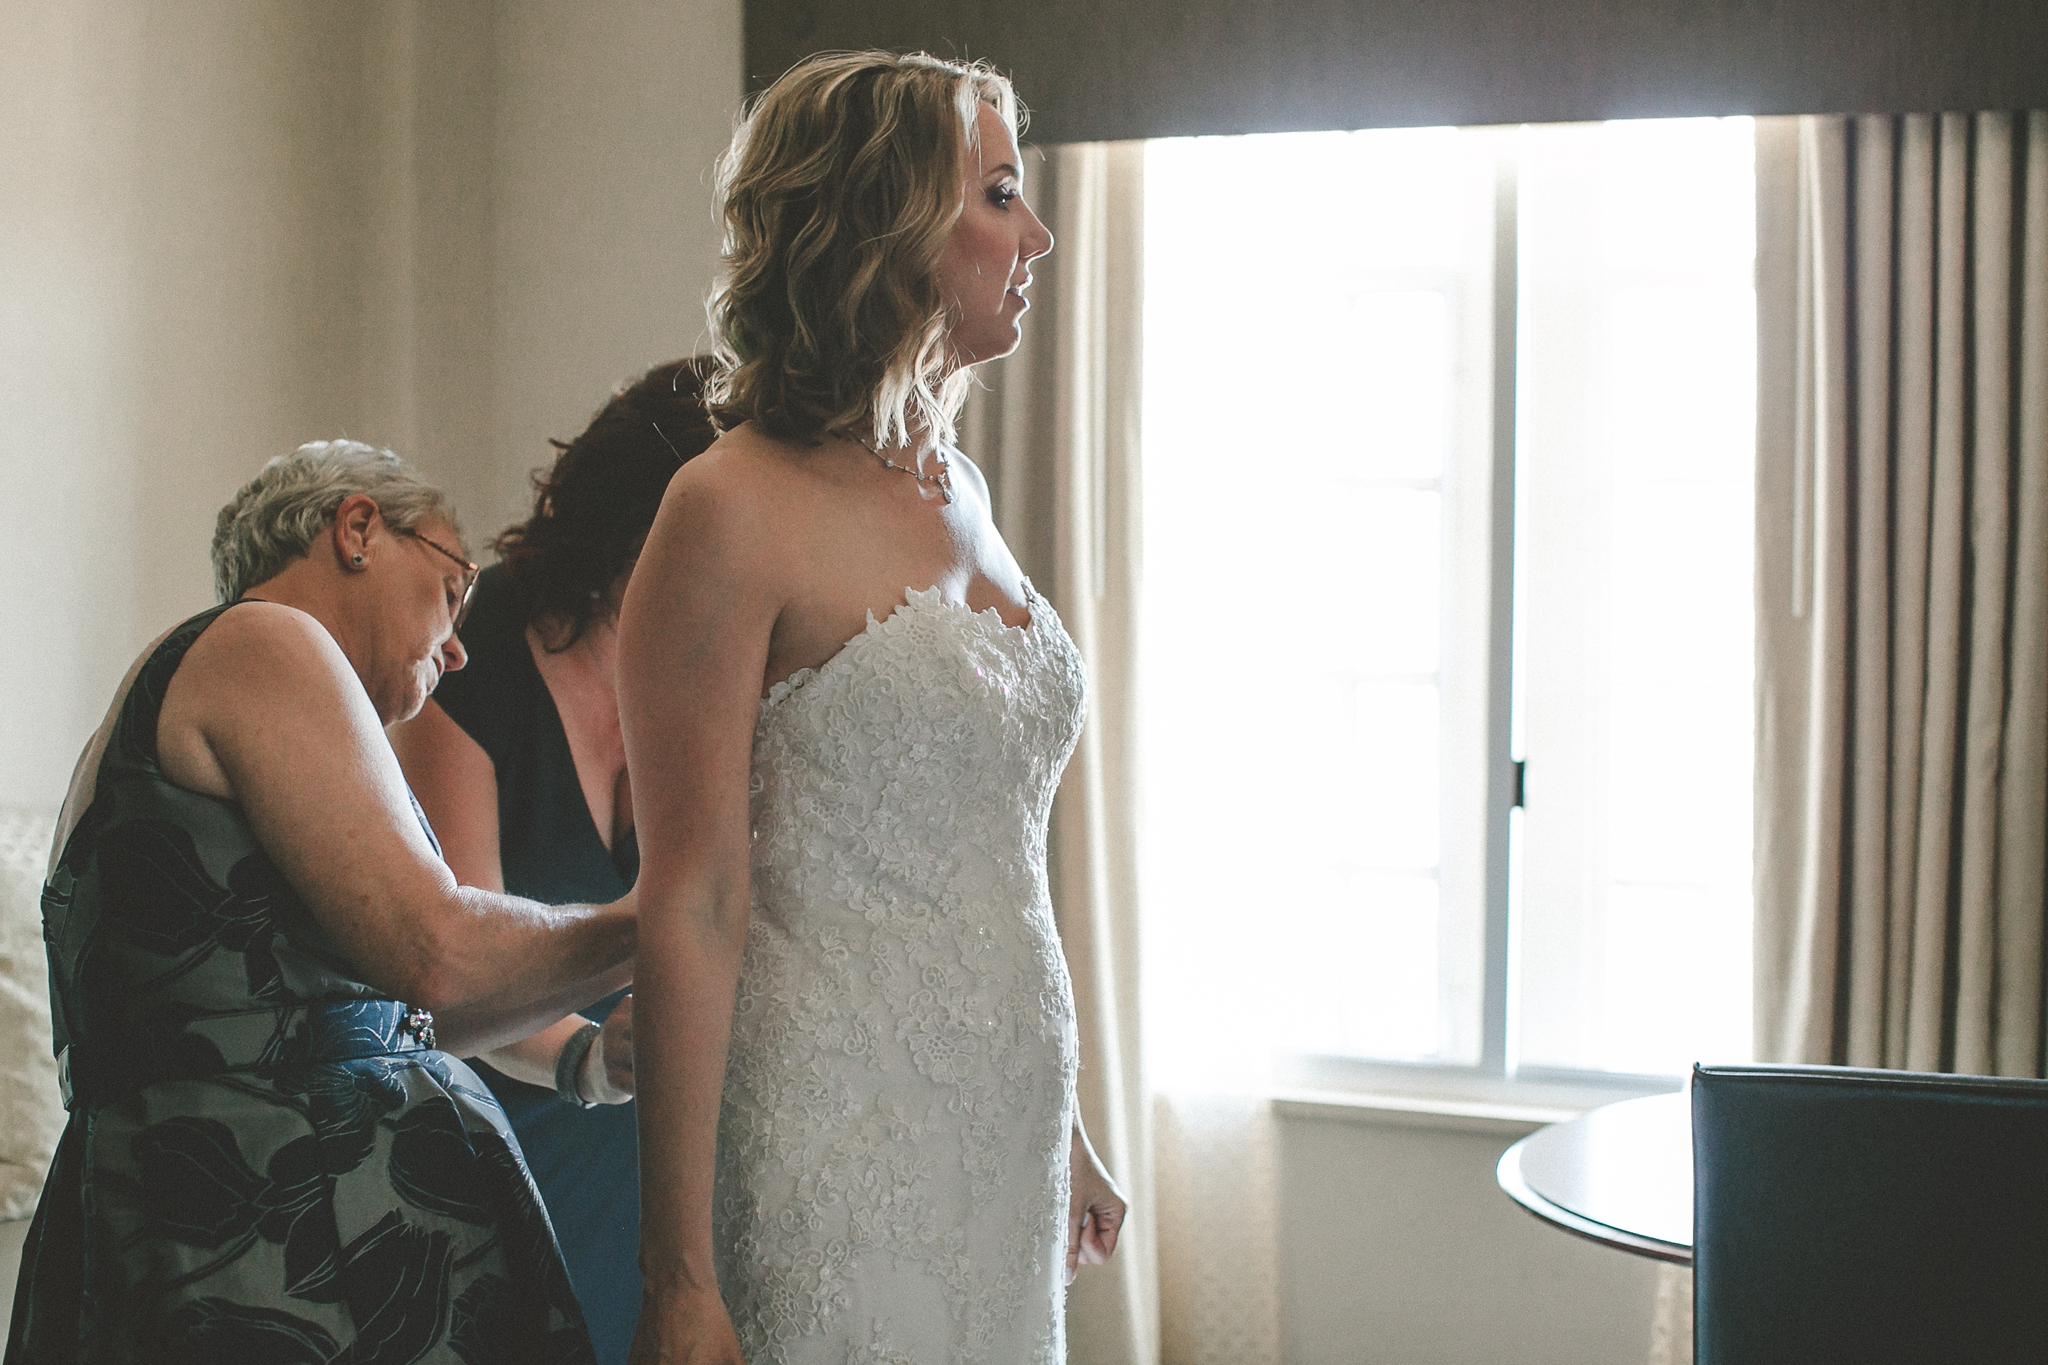 hotel_baker_st_charles_IL_wedding_photographer_0005.jpg